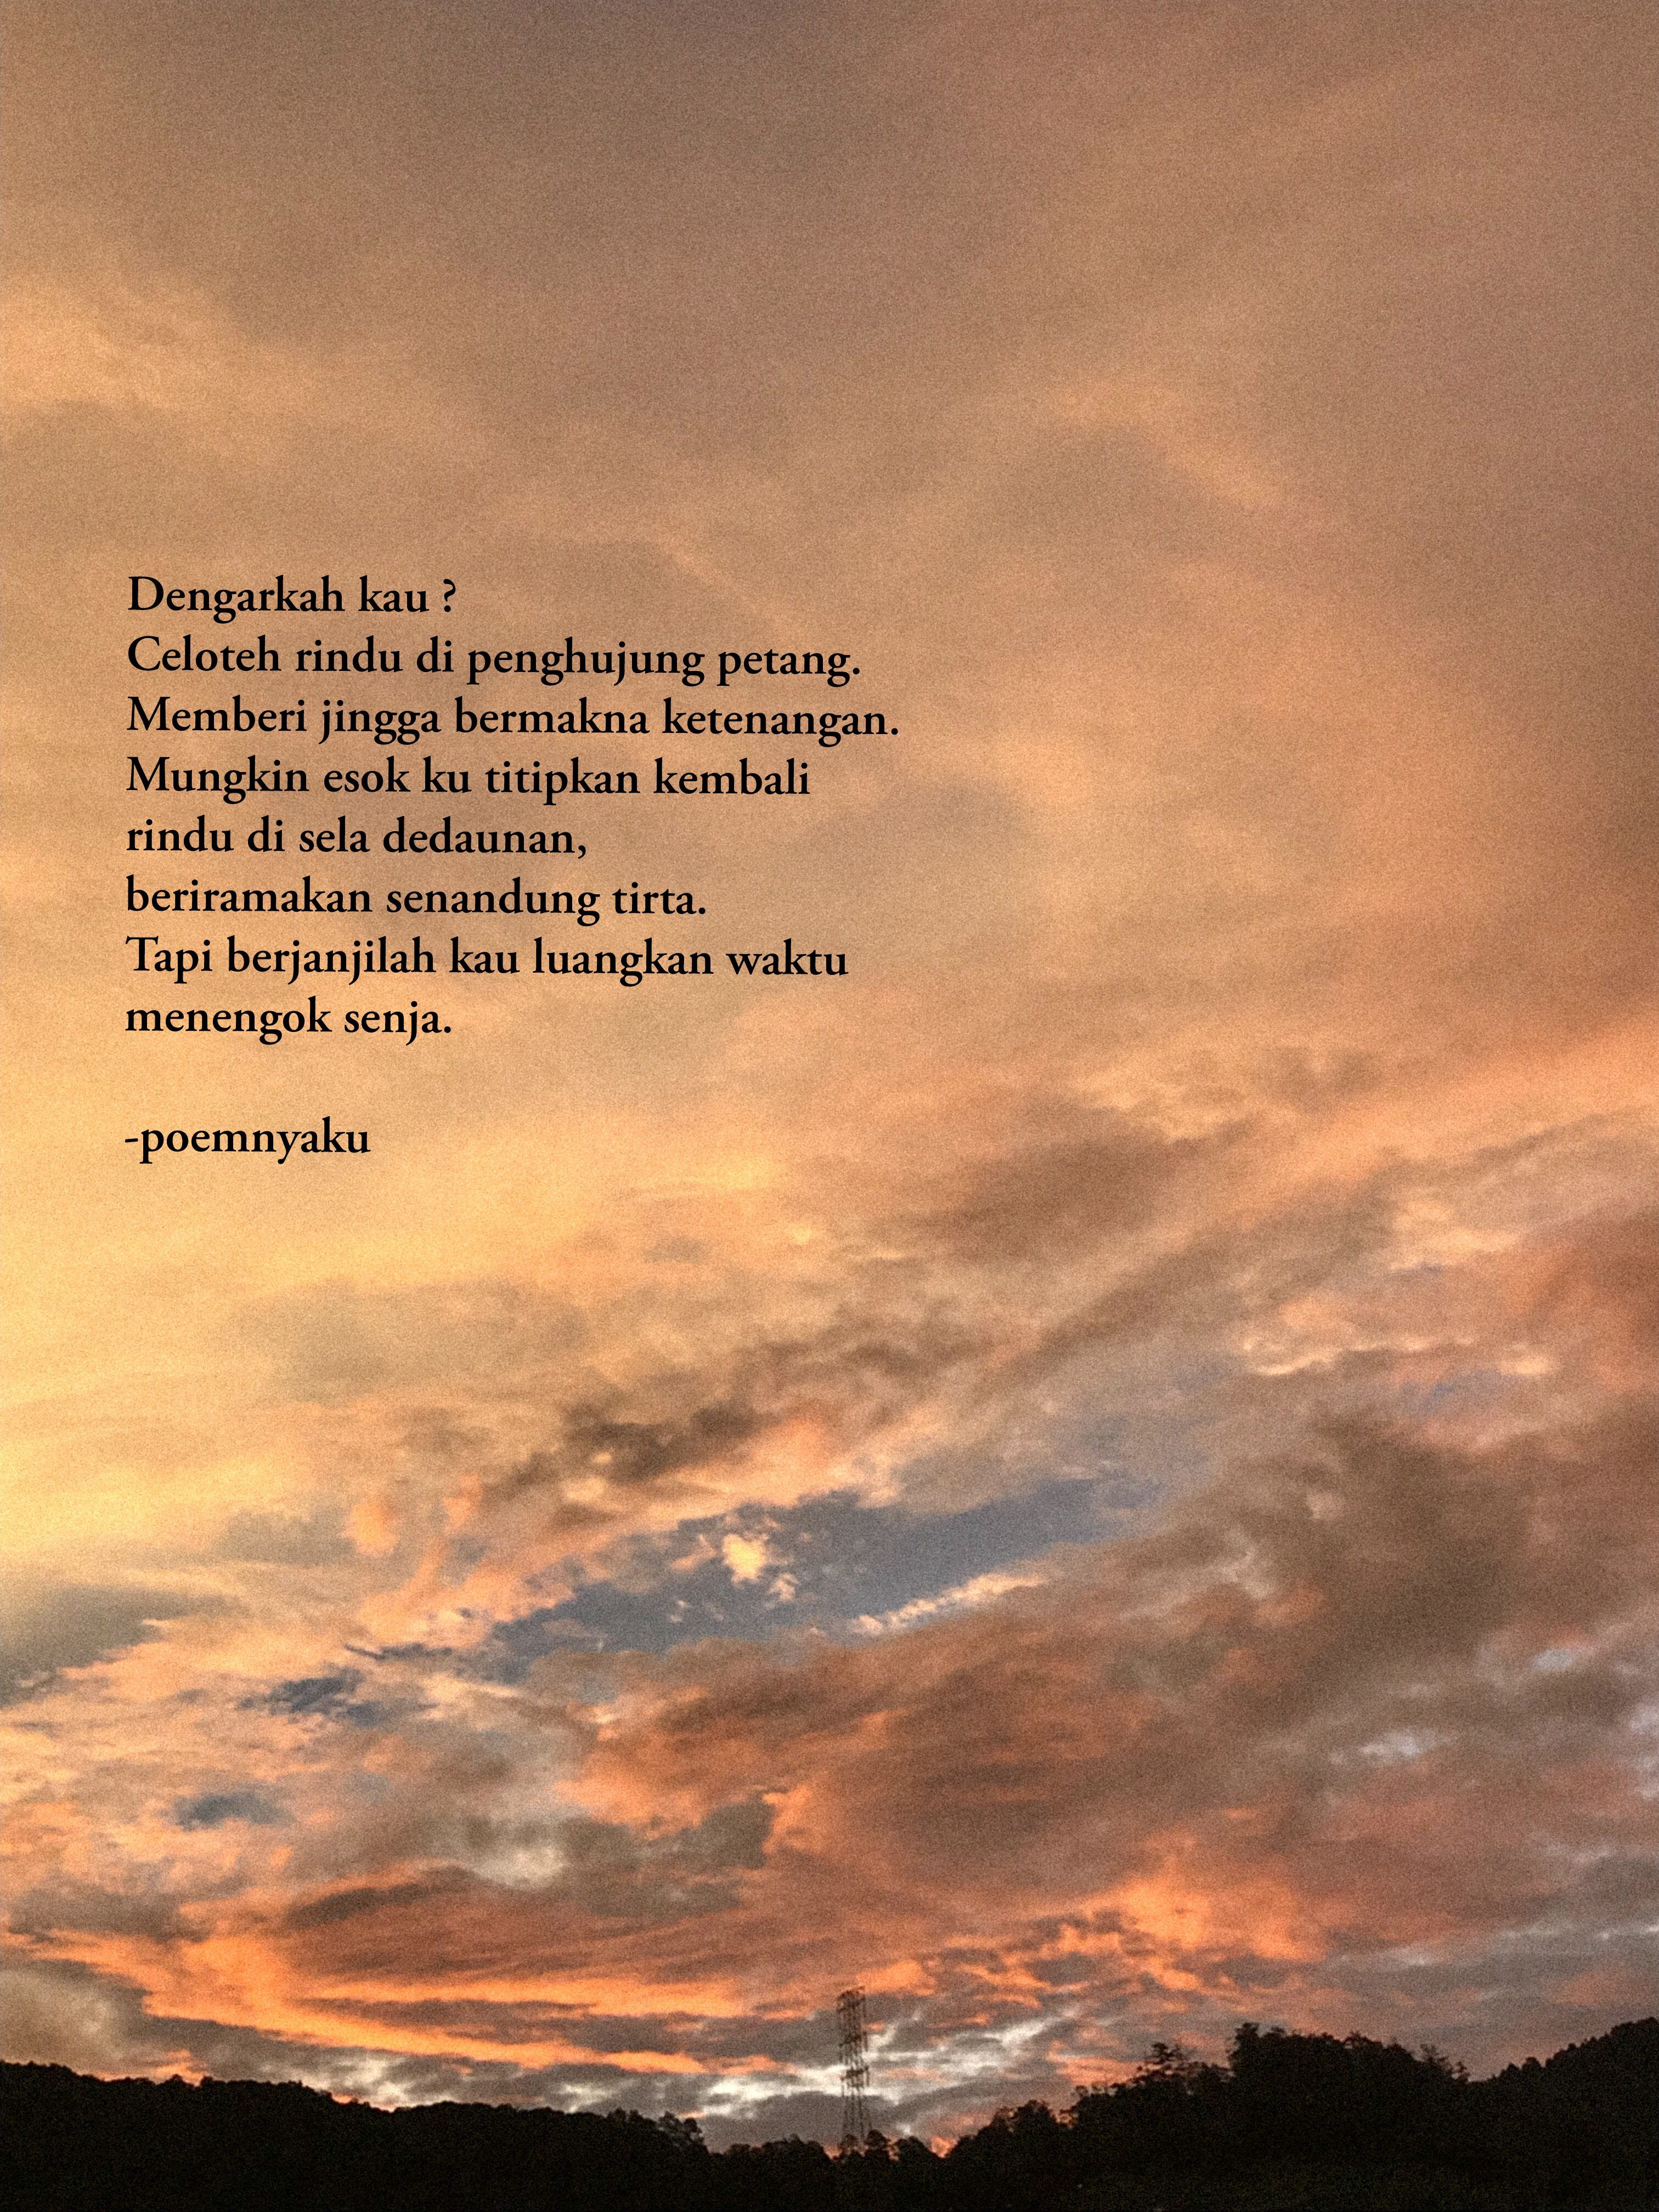 Pin By Widi Wiadnyana On Oc Quotes About Photography Cinta